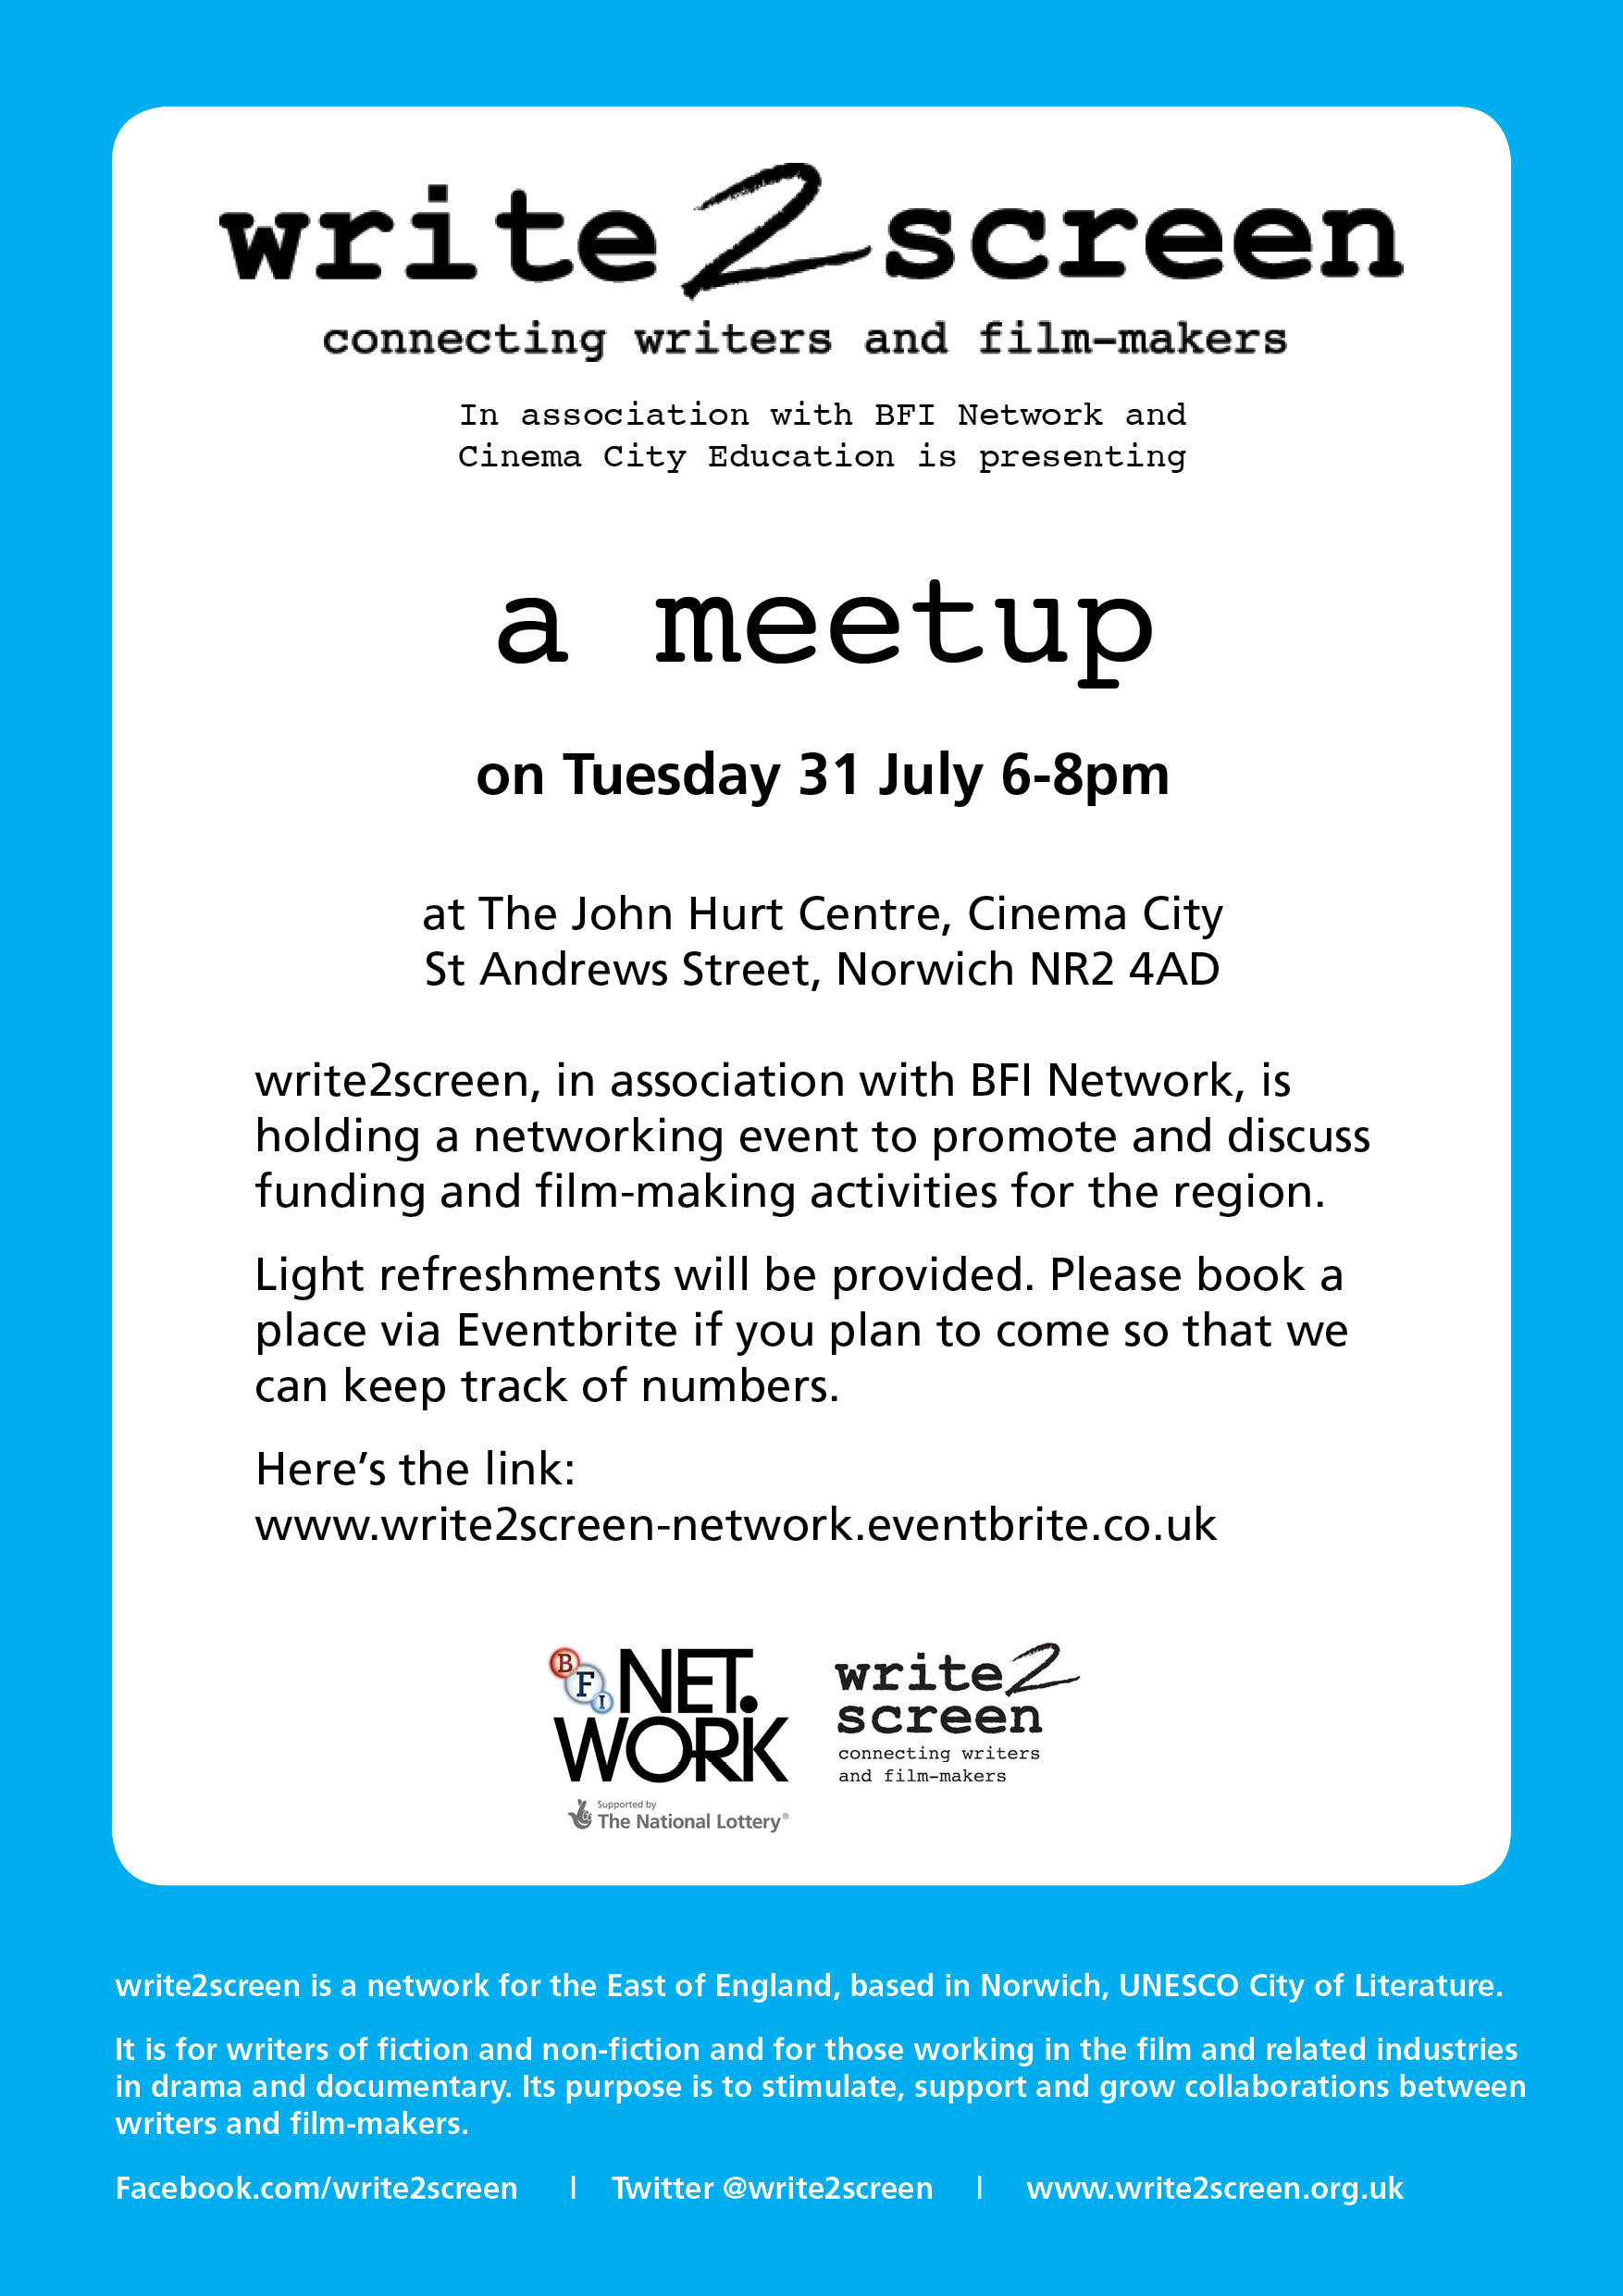 flyer promoting write2screen meetup